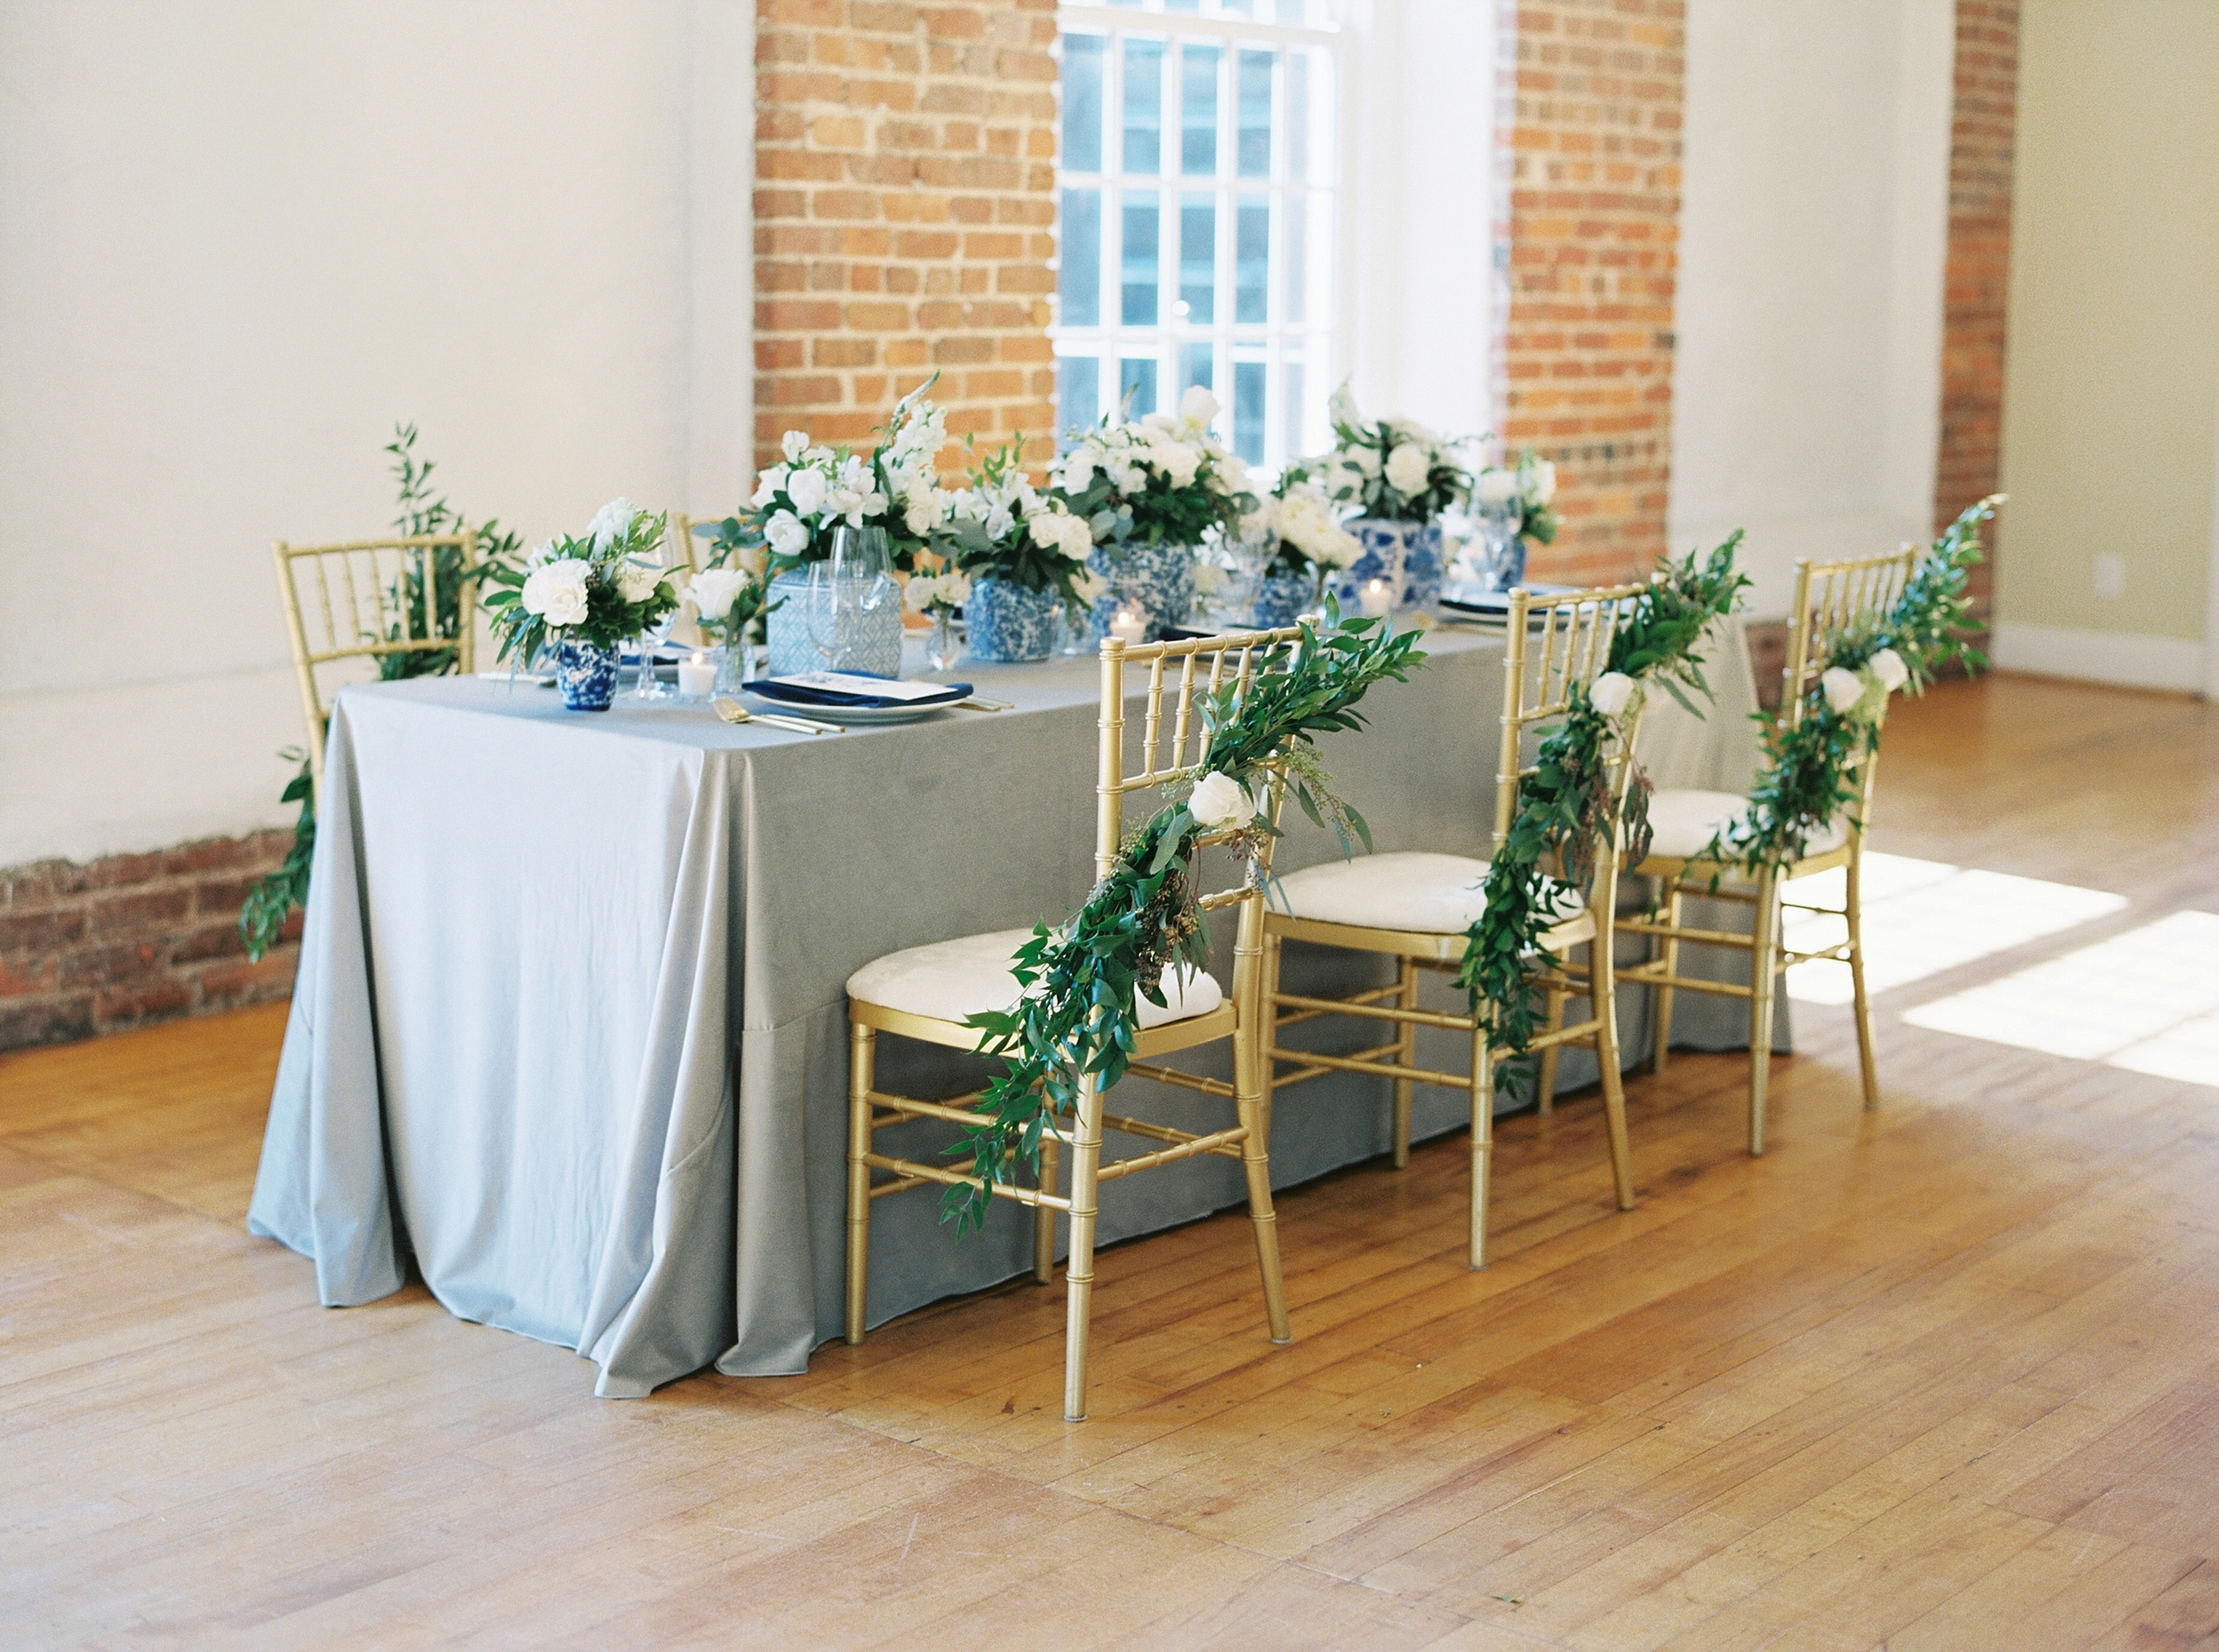 Photo by Alayna Kaye Photography, Design by Carly Marie Events, Flowers by Tre Bella, Rentals by Partymakers Event Rental